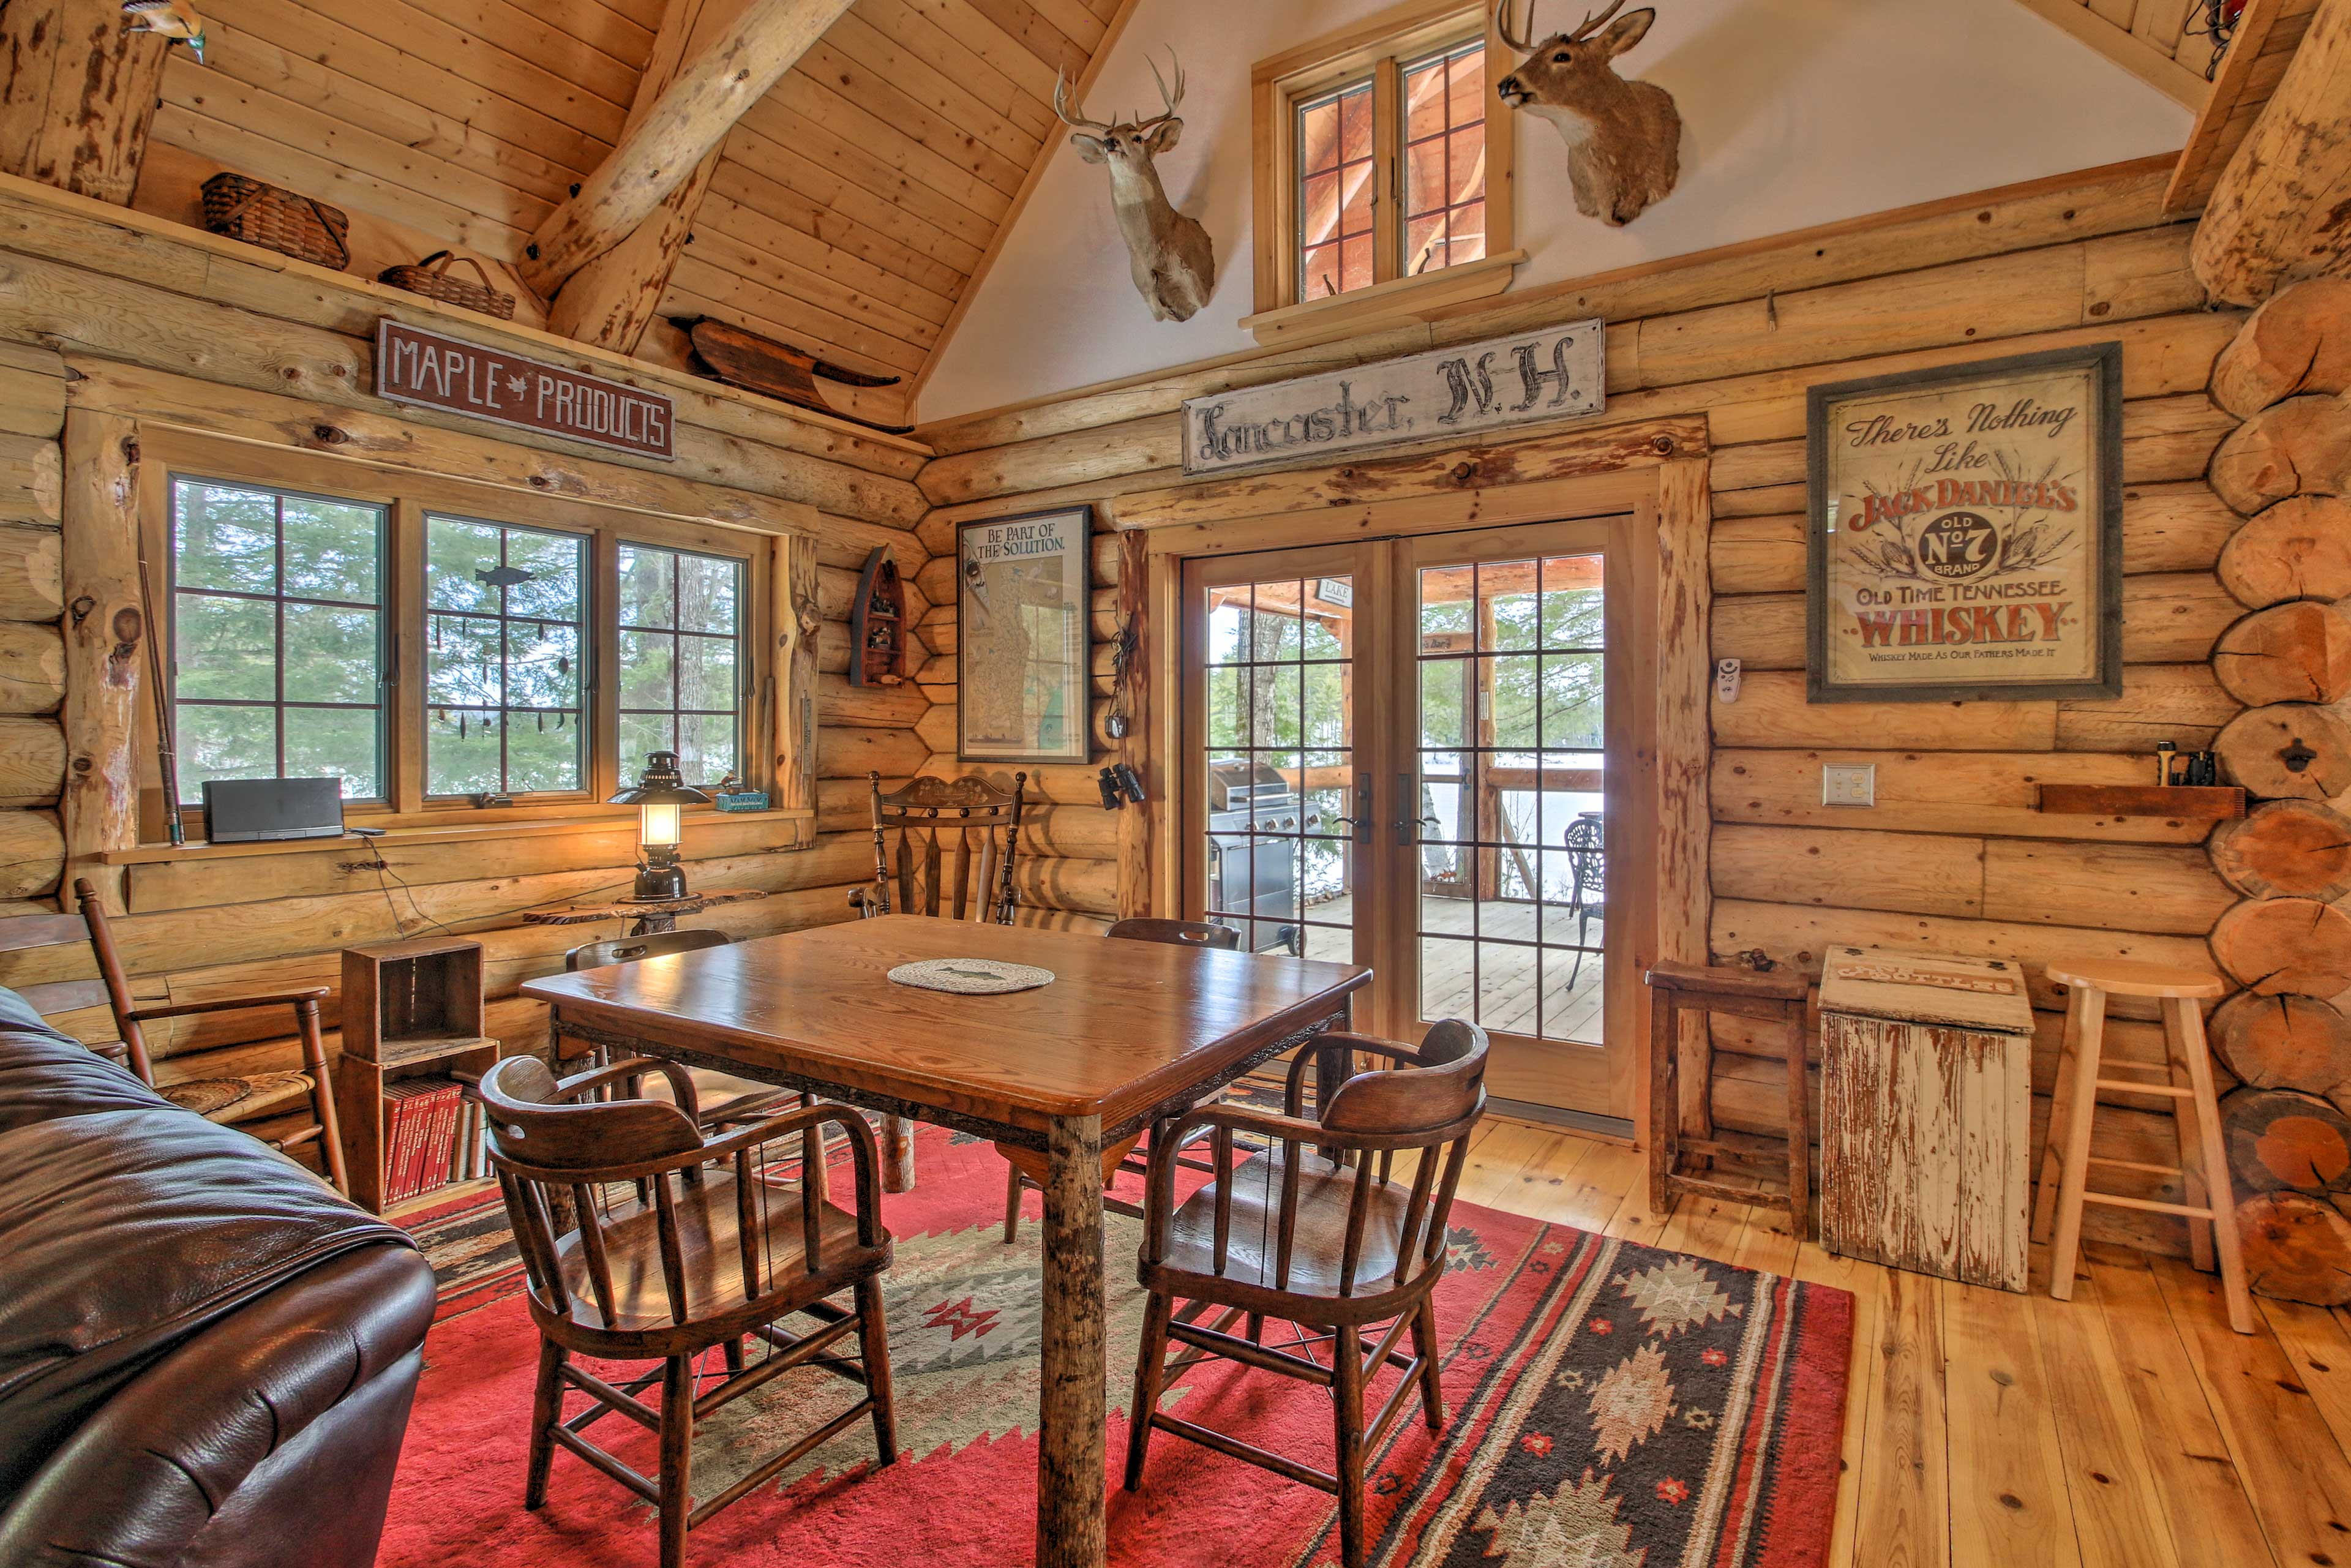 It's also the perfect place to enjoy board or card games!